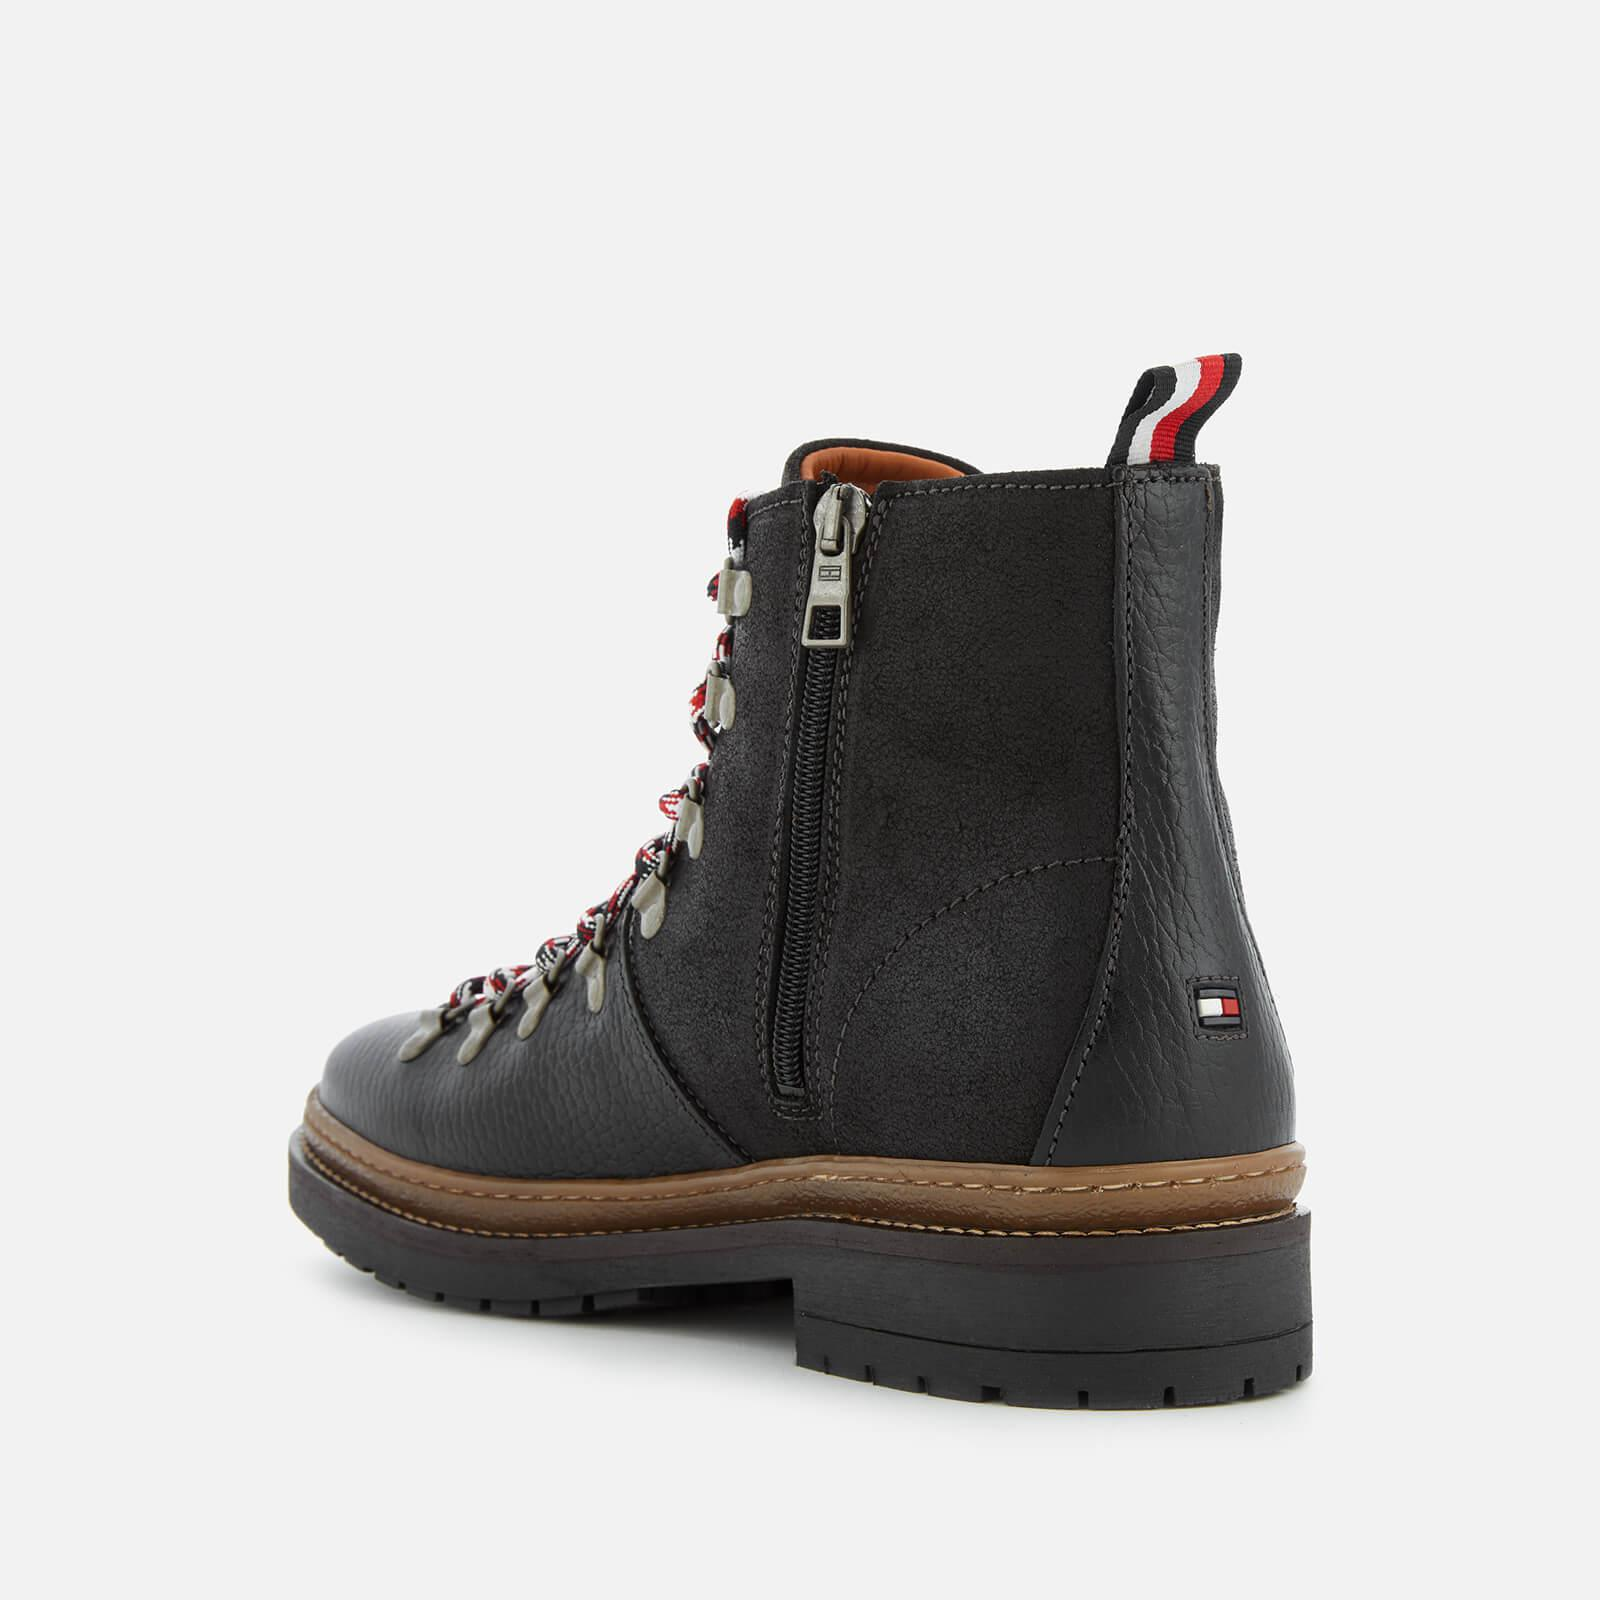 52742bda191c Tommy Hilfiger - Black Elevated Outdoor Leather Hiking Boots for Men -  Lyst. View fullscreen